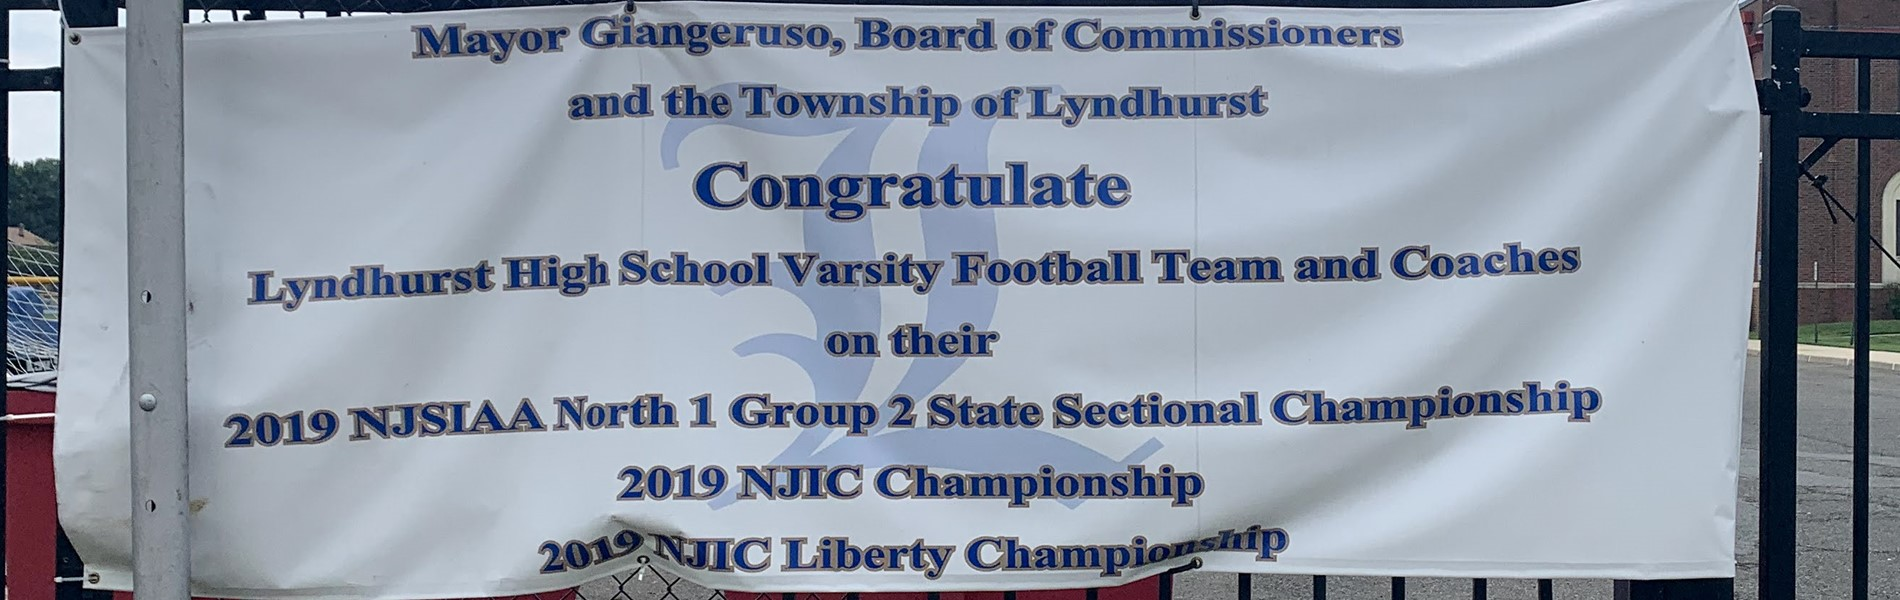 LHS Football sign